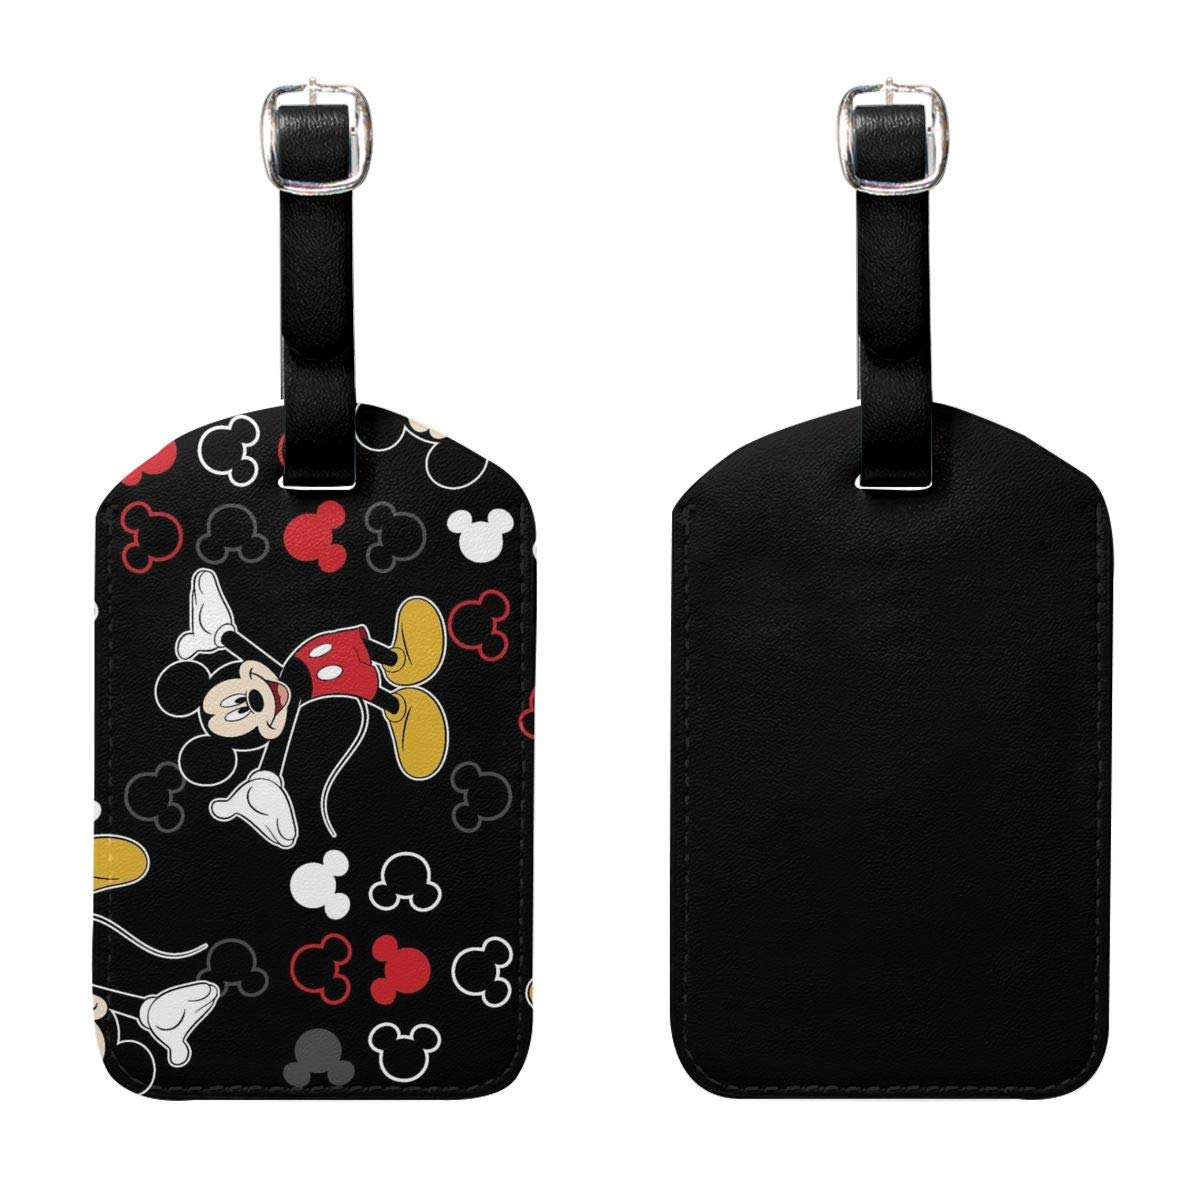 Set of 2 PU Leather Luggage Tags Mickey-Mouse-Black-Background Suitcase Labels Bag Adjustable Leather Strap Travel Accessories